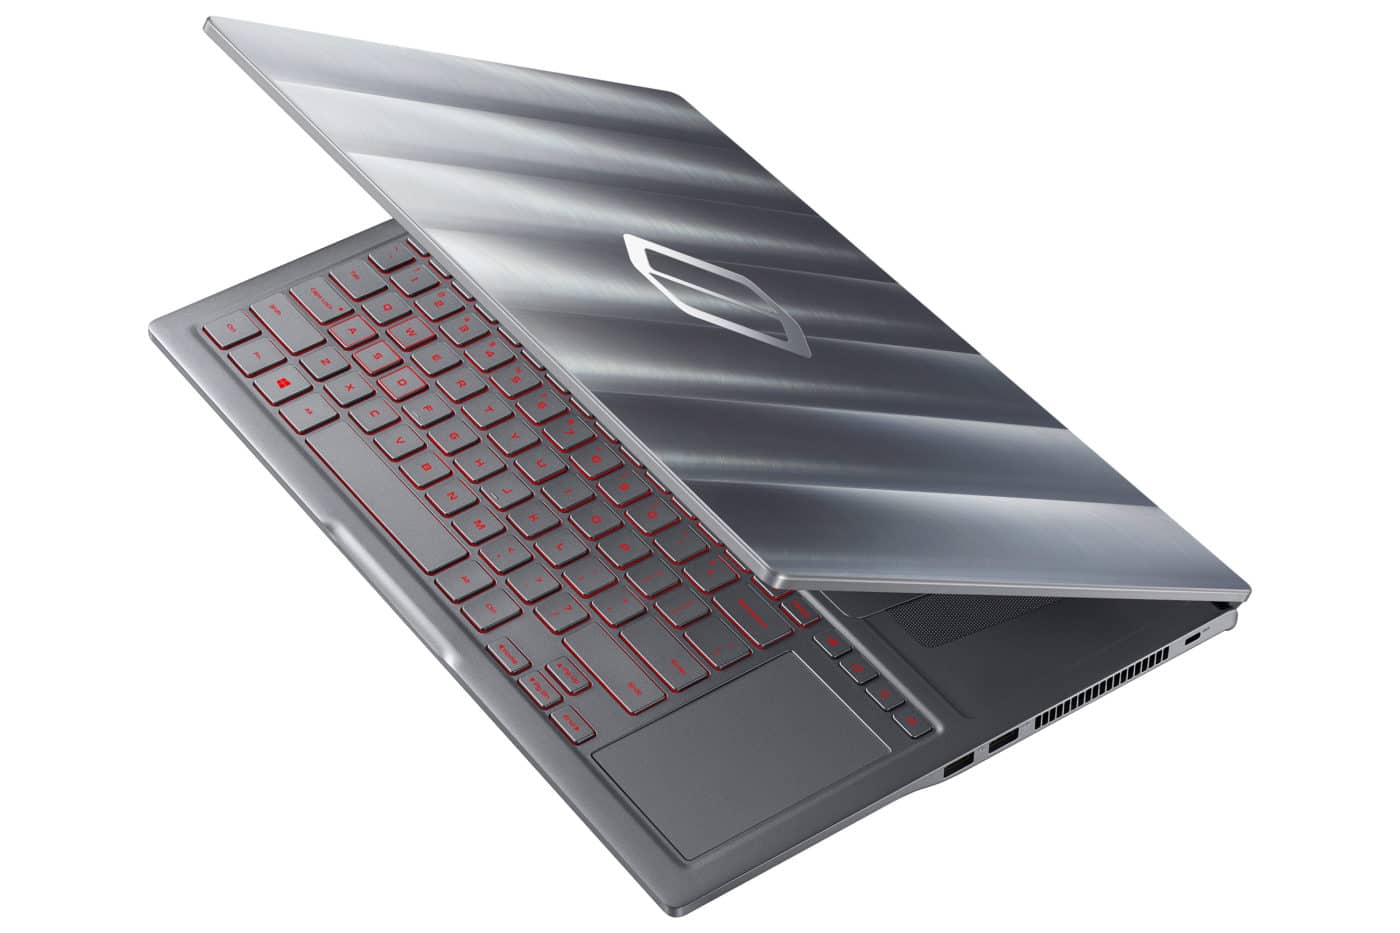 Samsung Announced Their Odyssey Z Gaming Notebook, It's Thin!